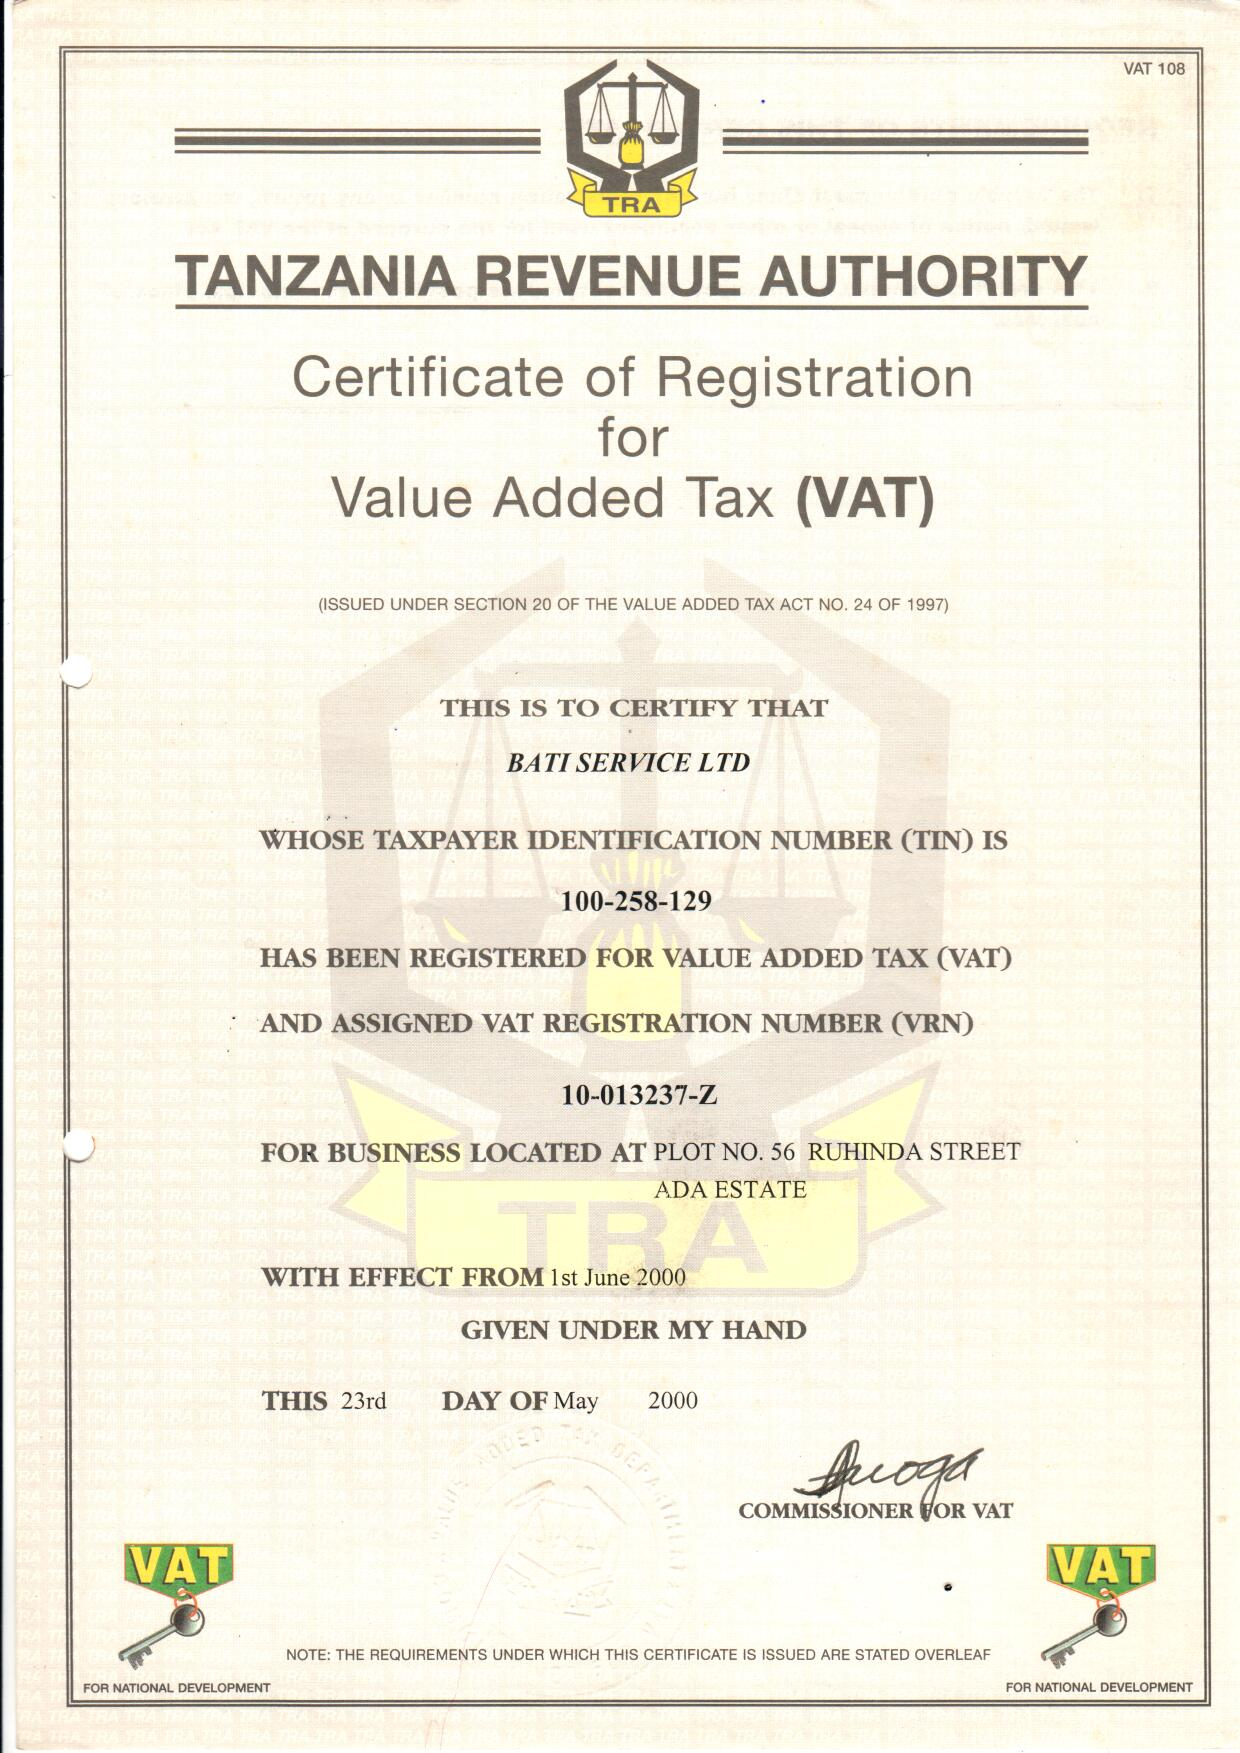 Certificate of Registration for VAT